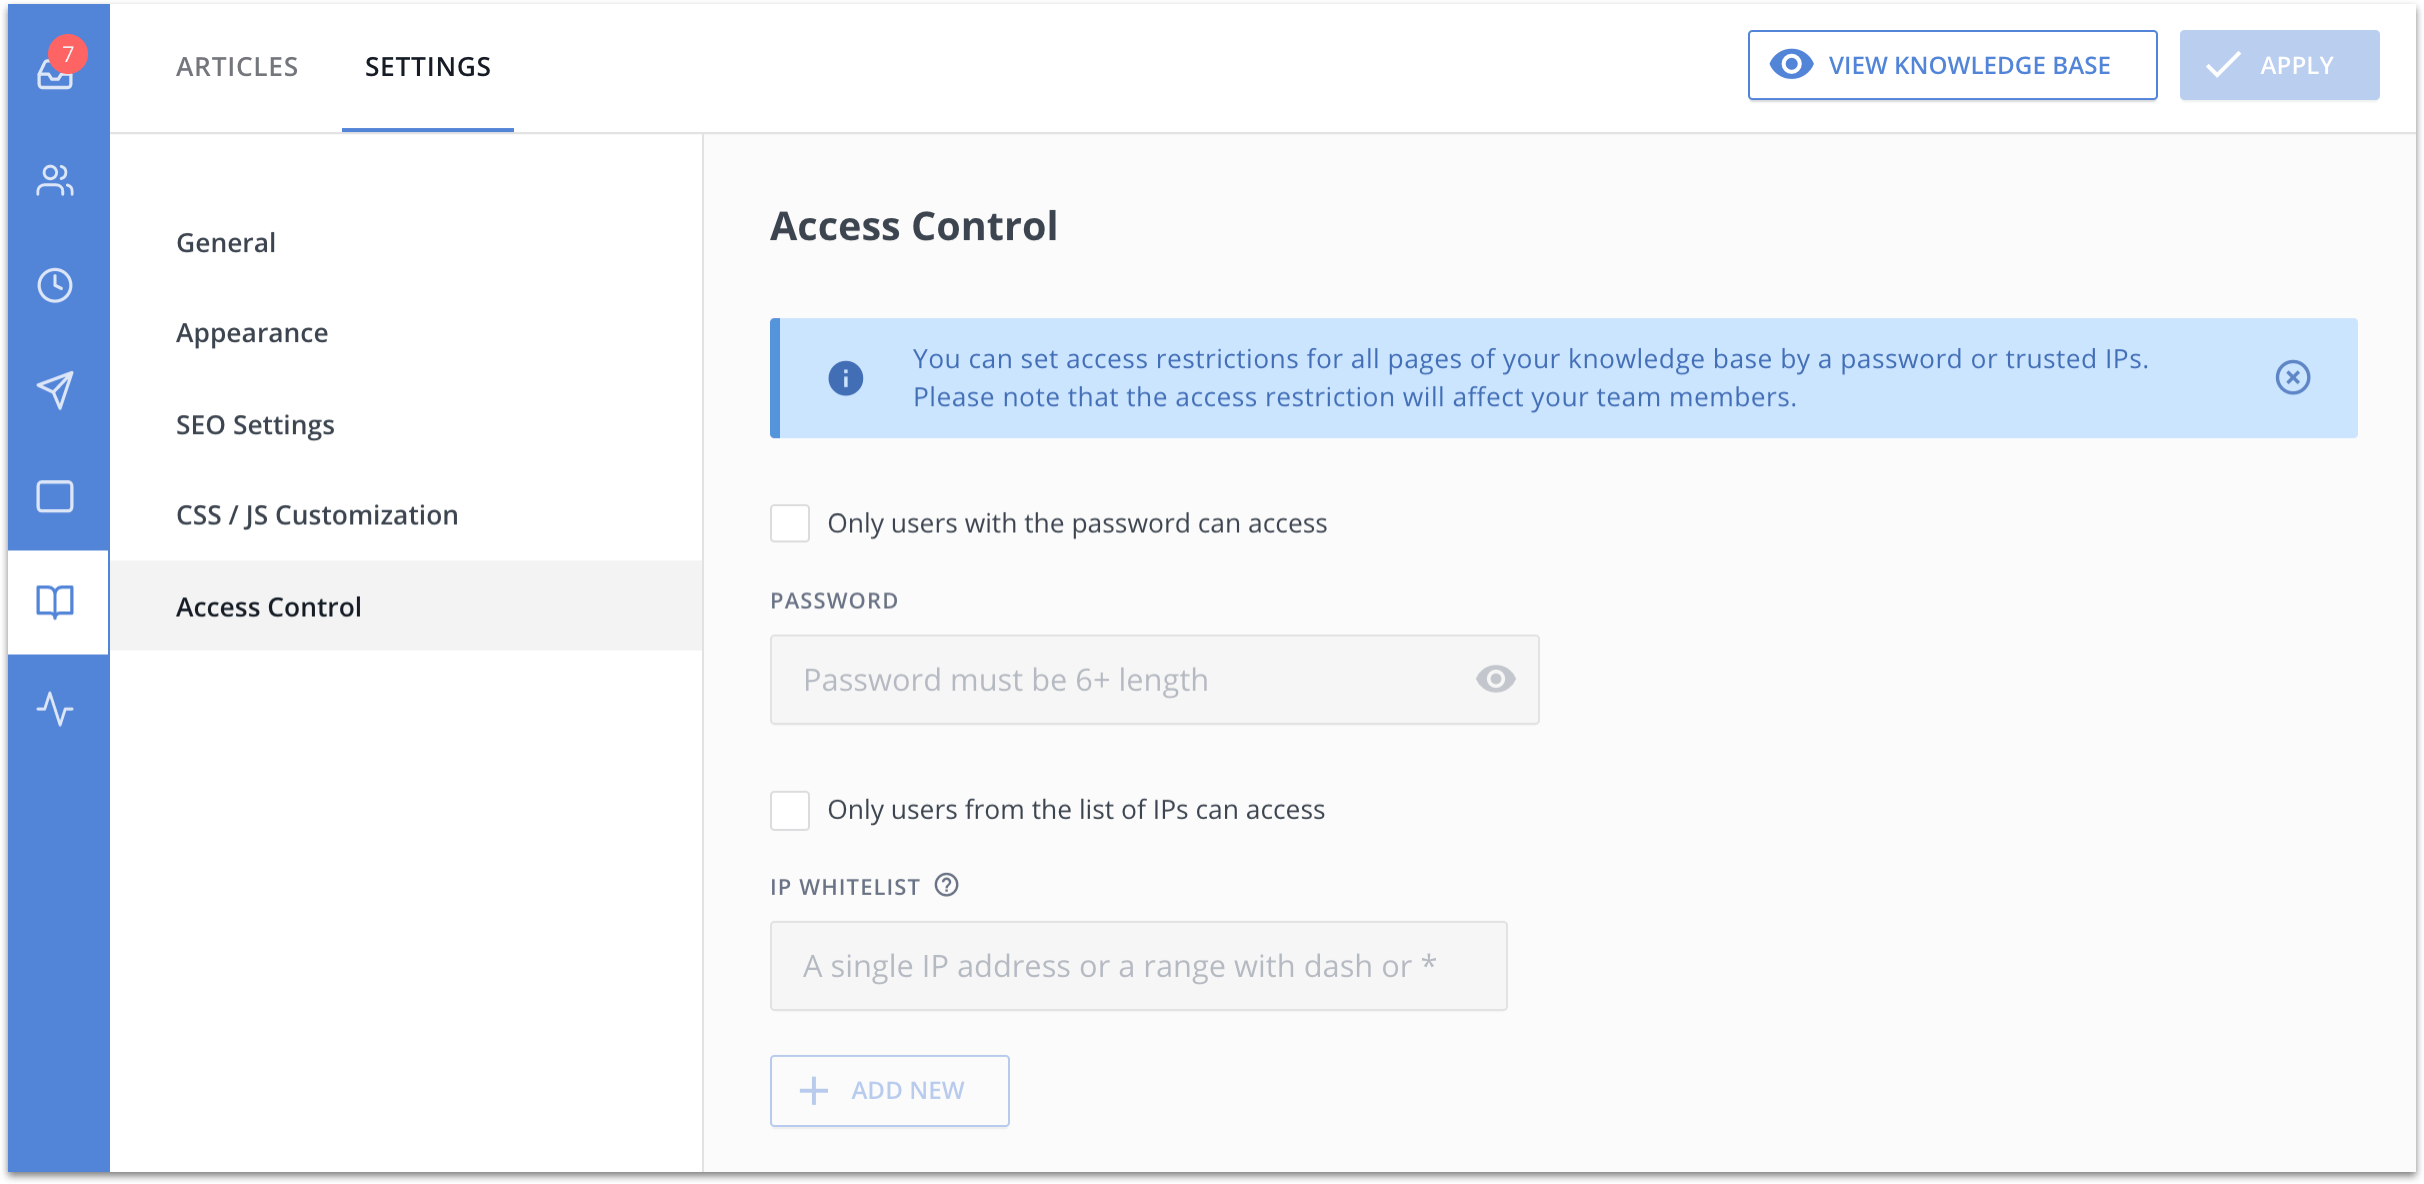 Settings for knowledge base access restrictions